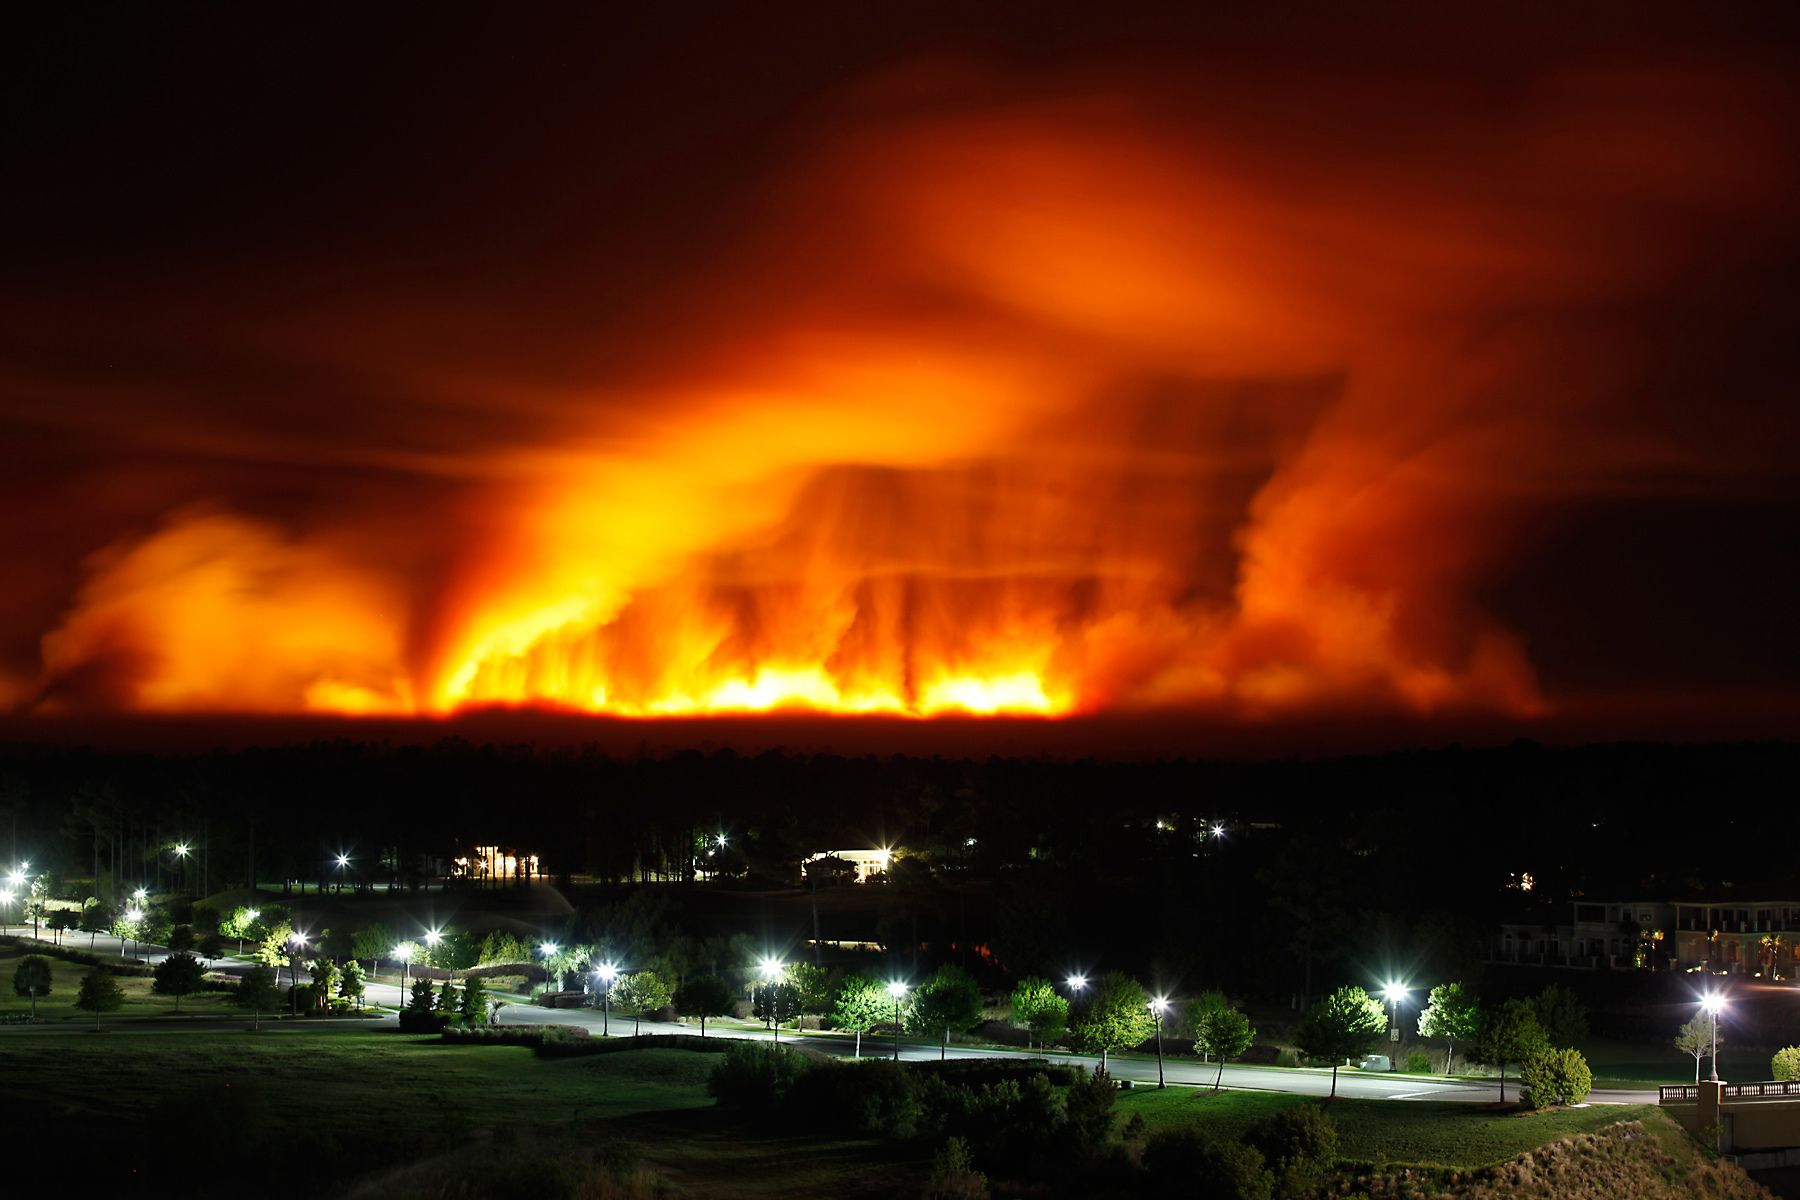 Taken from the top floor of the Marina Inn at Grande Dunes, a wild fire glows the sky red near the upscale development in Myrtle Beach. The wild fire destroyed more than 70 homes in nearby North Myrtle Beach.